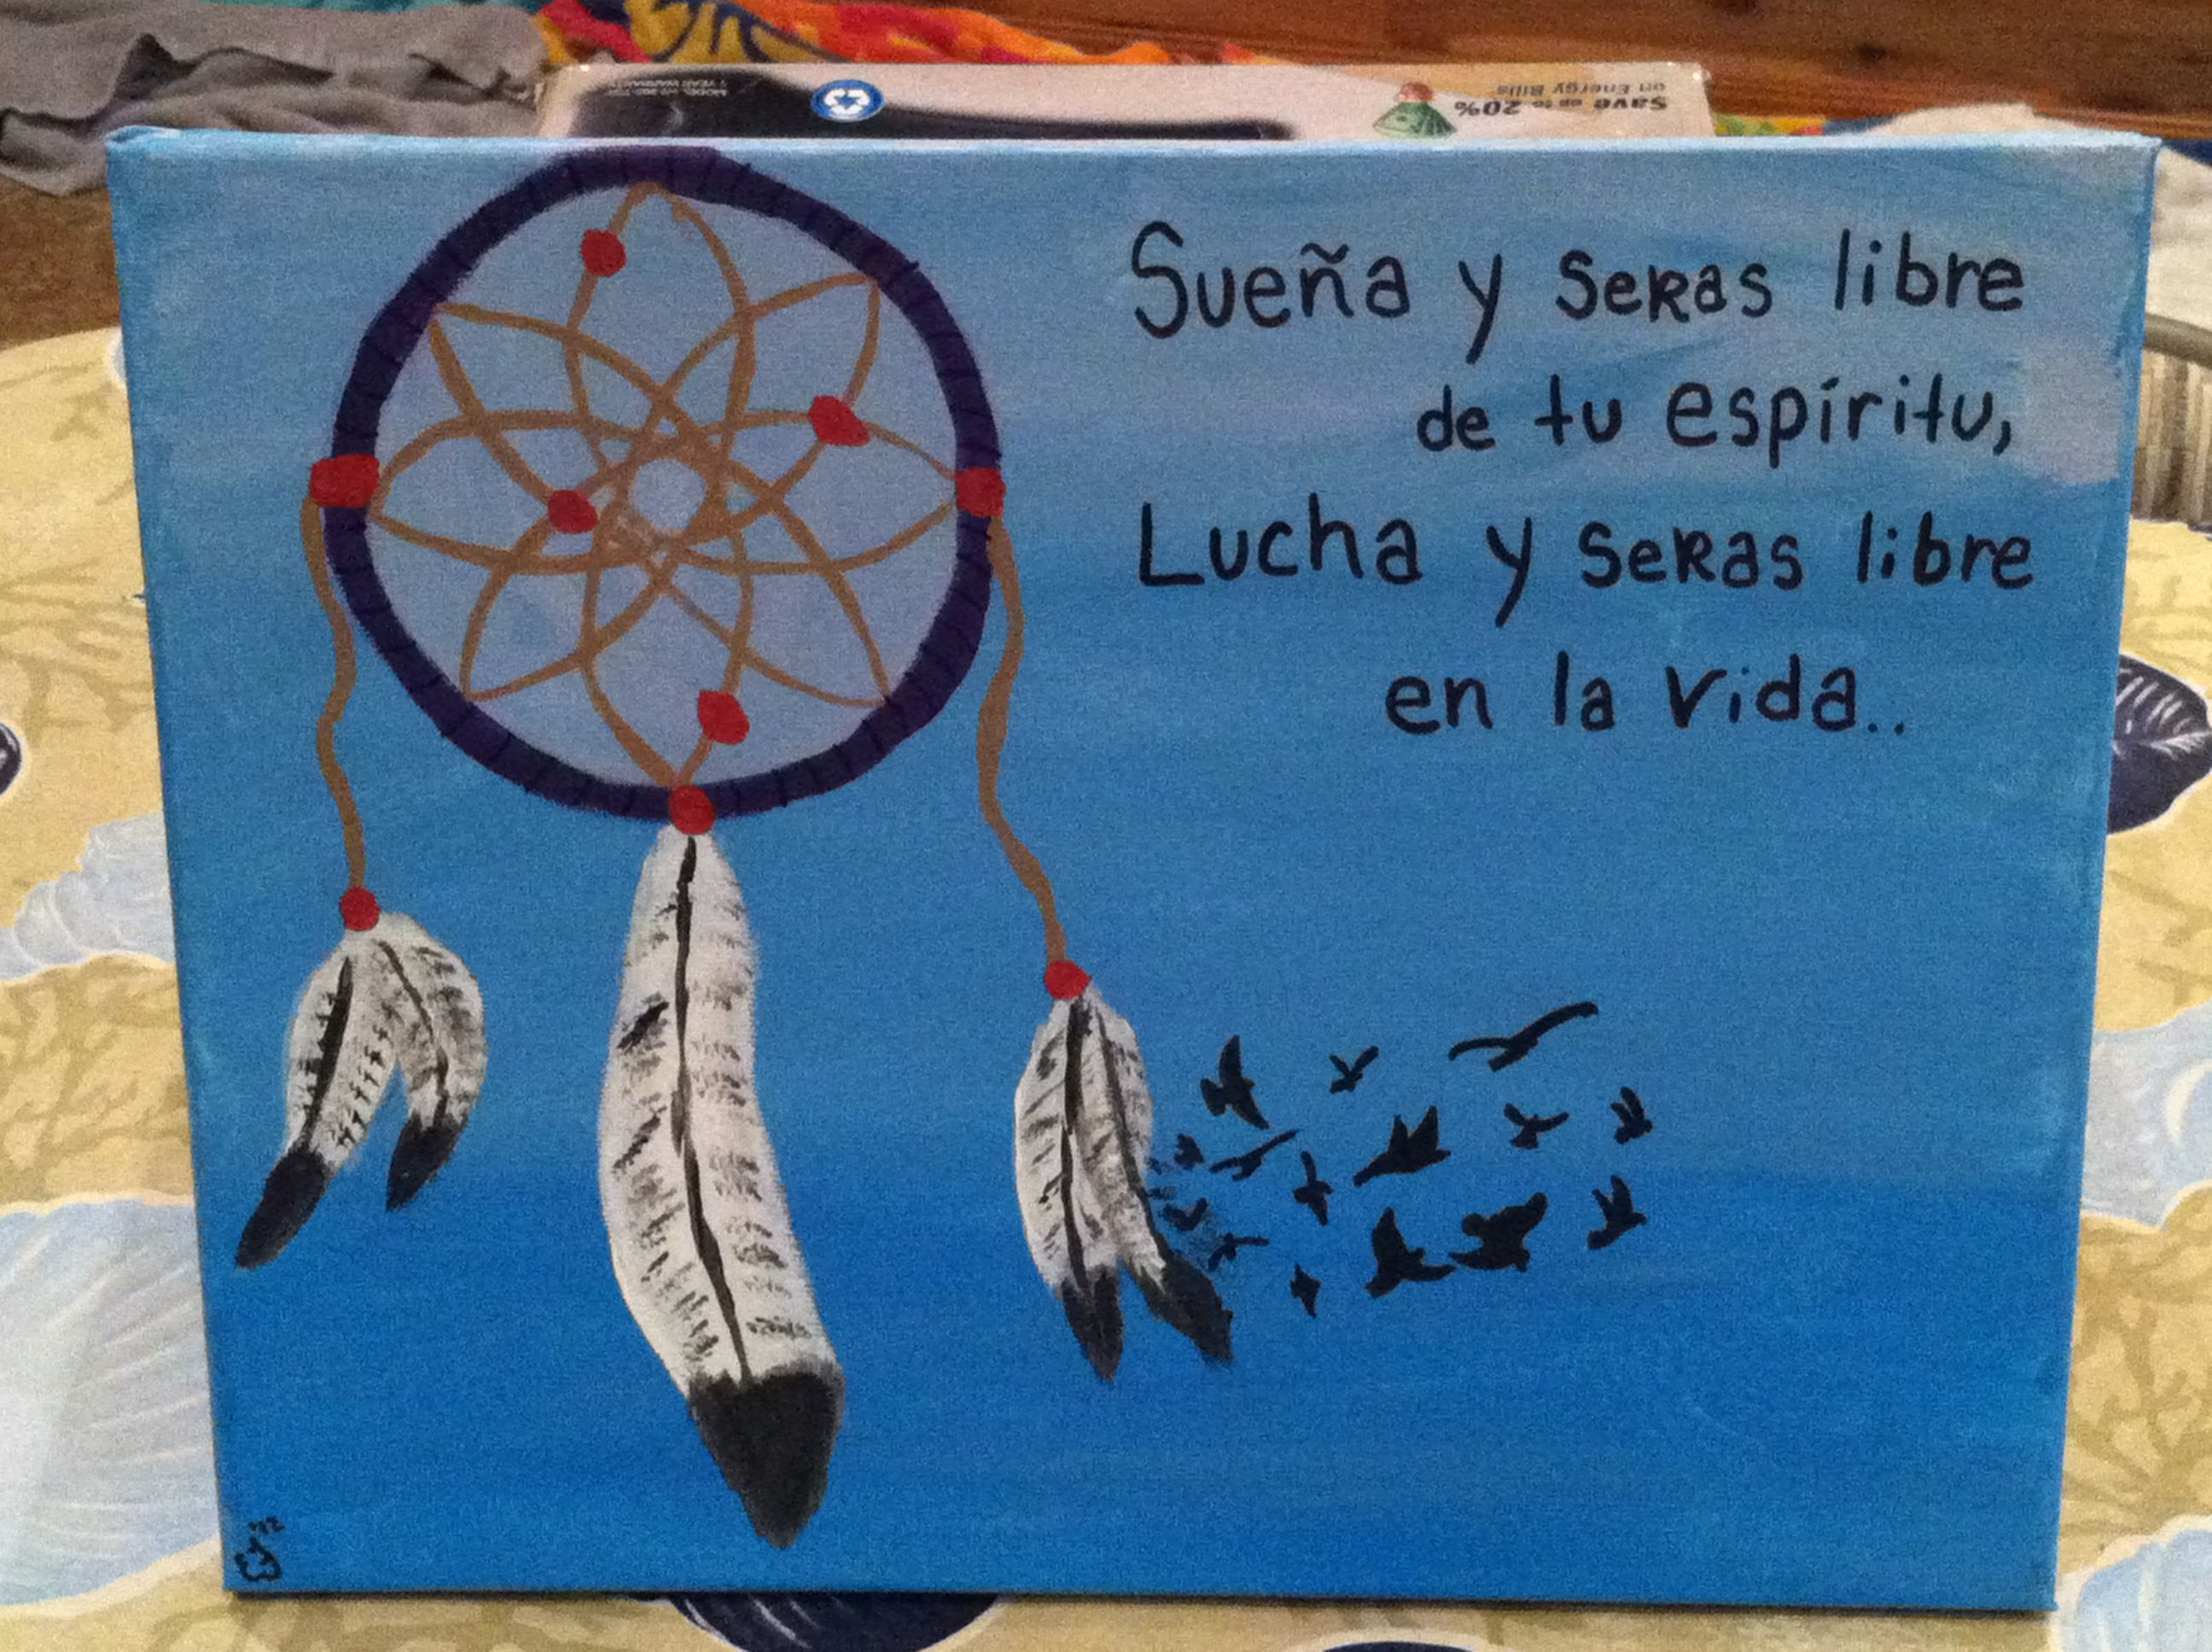 Sueña y seras libre de tu espiritu, lucha y seras libre en la vida.. in english: Dream and you will free your spirit, fight and be free in life.. Artist: Emily Folino Medium: Acrylic paint